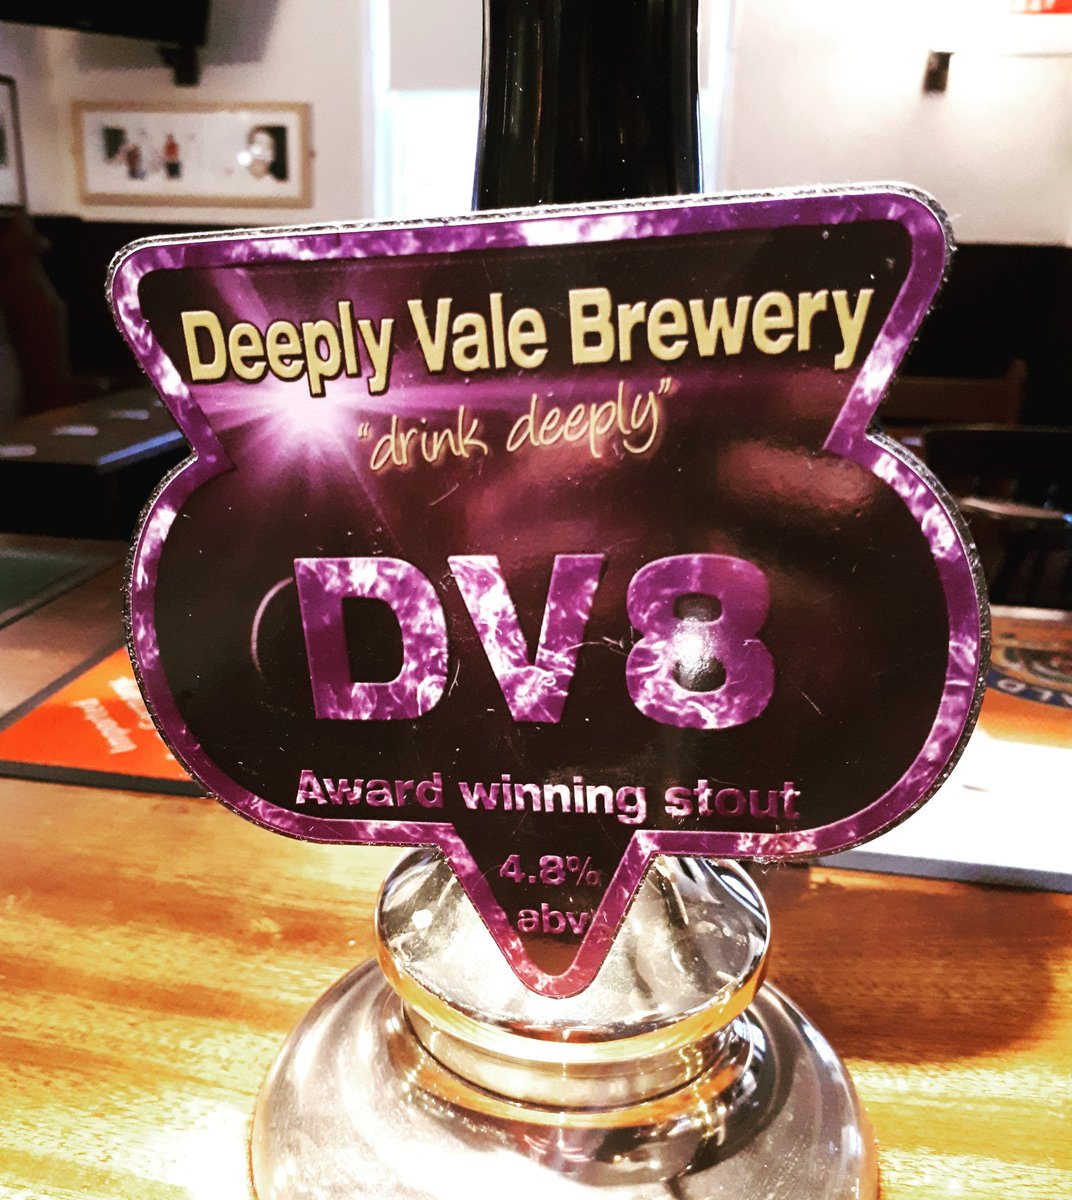 Check out this newbie... 🍻#everydayisabeerfestival #beer #nowserving #onthebar #local #localale #localbrew